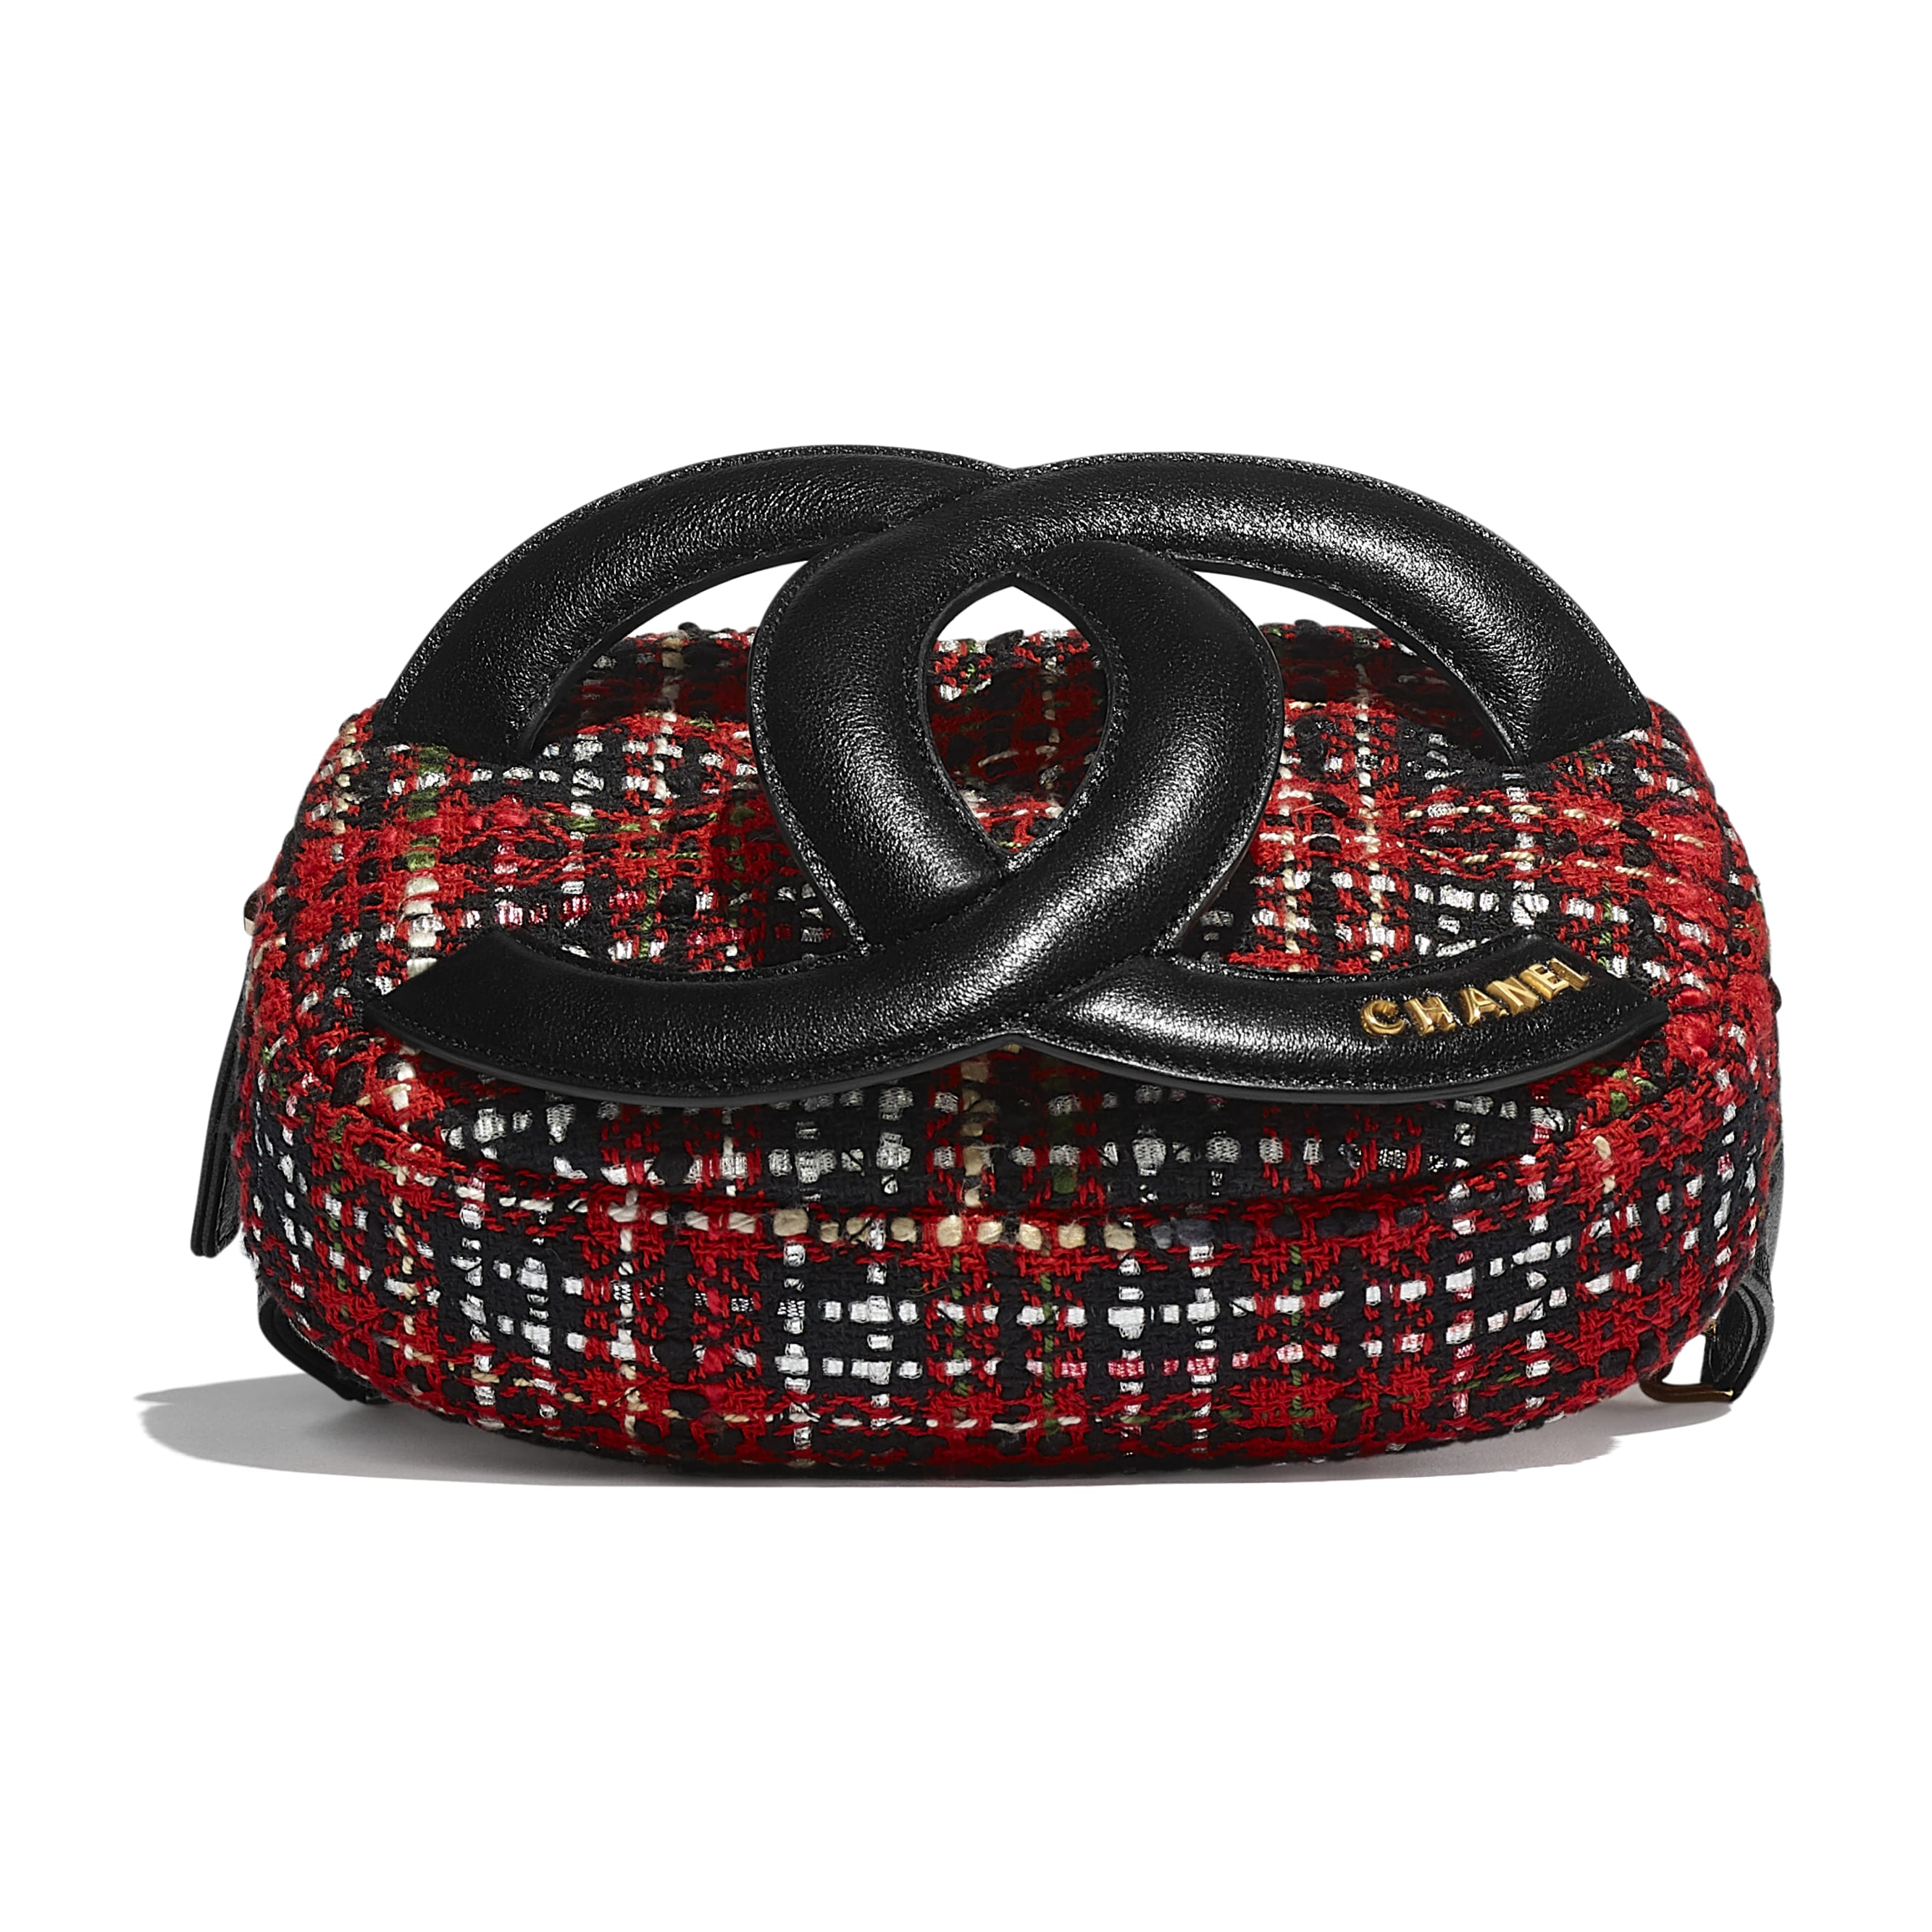 Waist Bag - Red, Black, White & Green - Tweed, Lambskin & Gold Metal - Extra view - see standard sized version